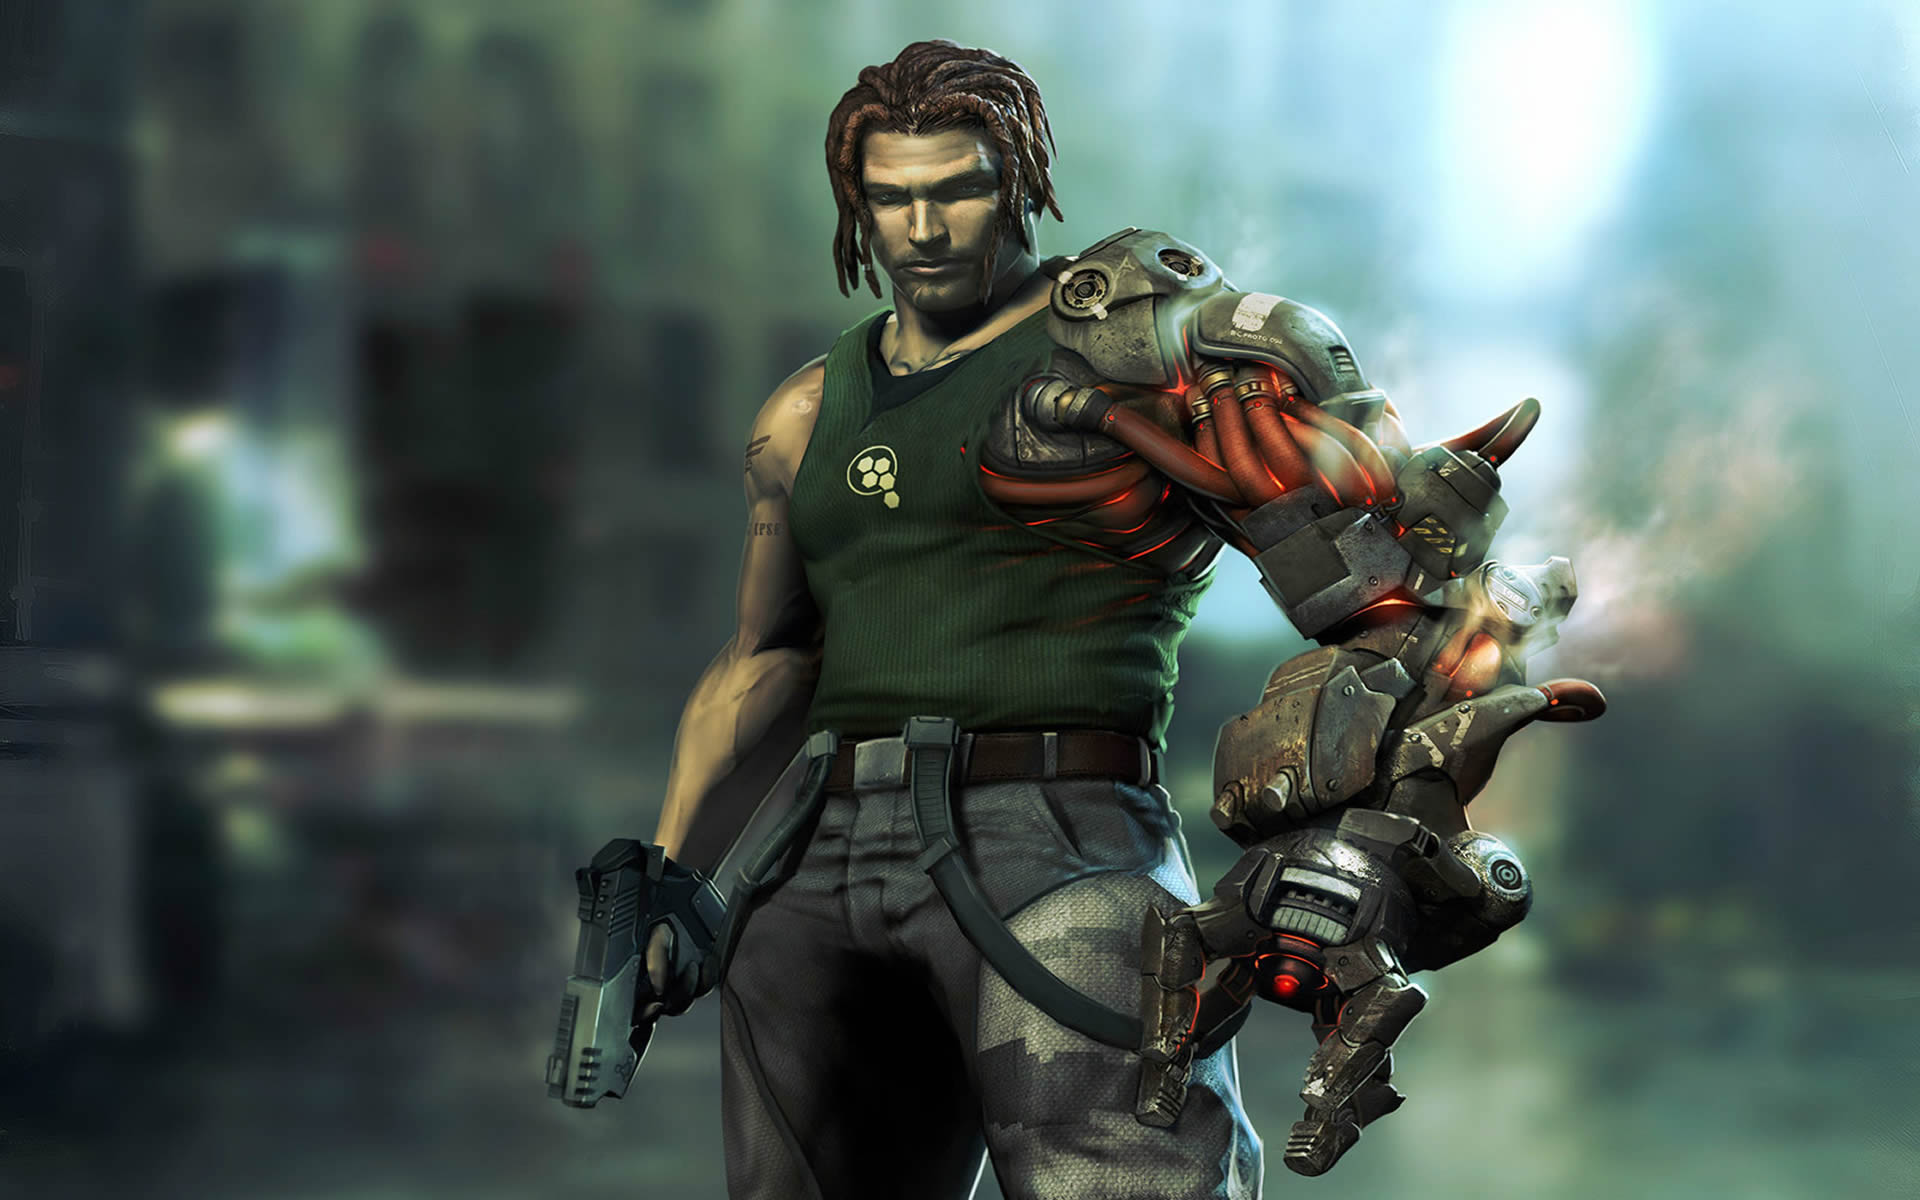 posing with gun and grapple arm Wallpaper Background thumbnail